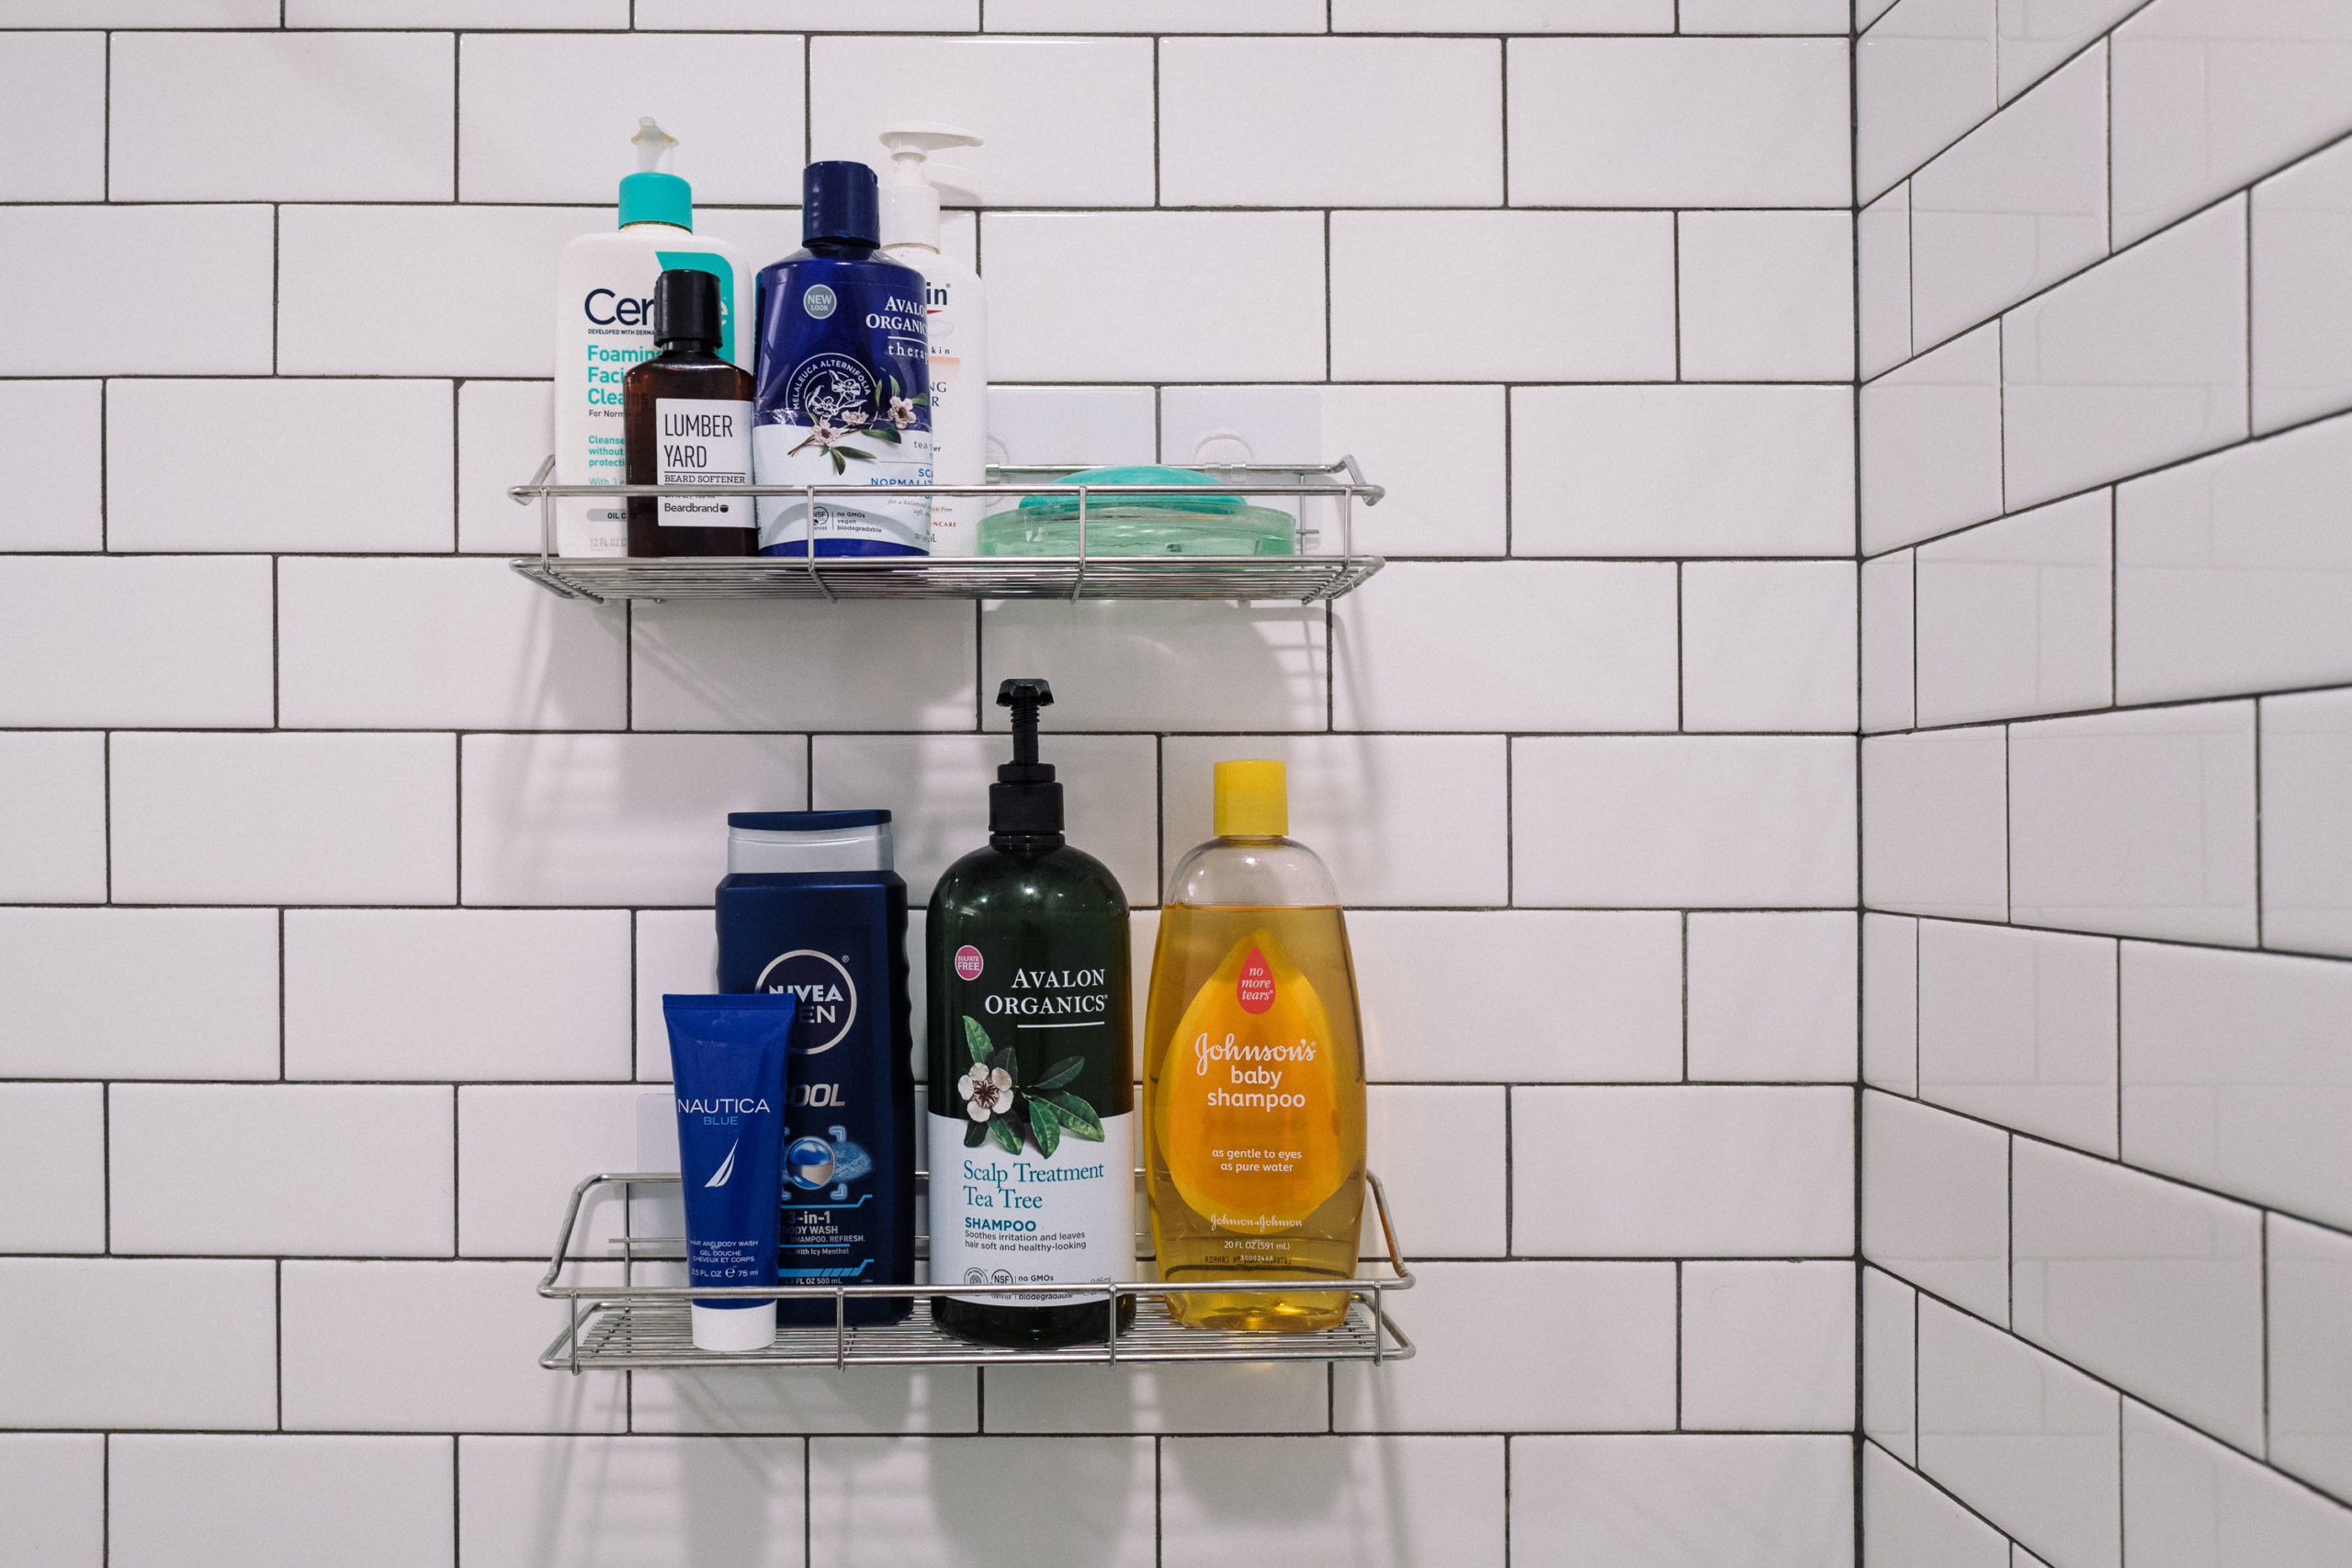 a shower organizer with shampoo and soap